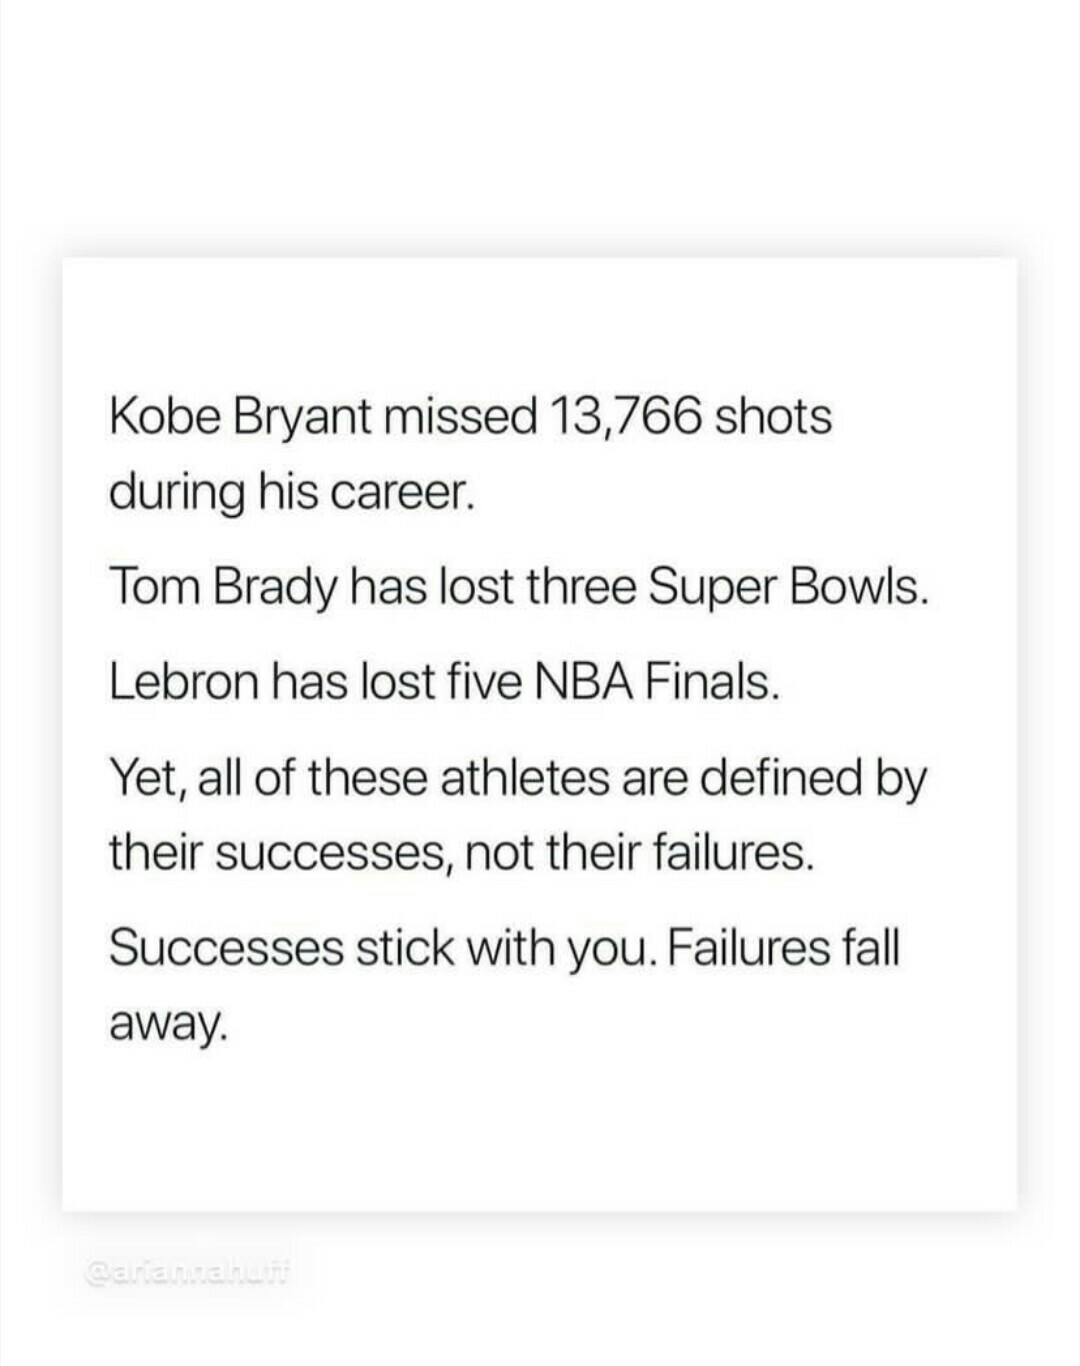 [Image] Successes stick with you. Failures fall away